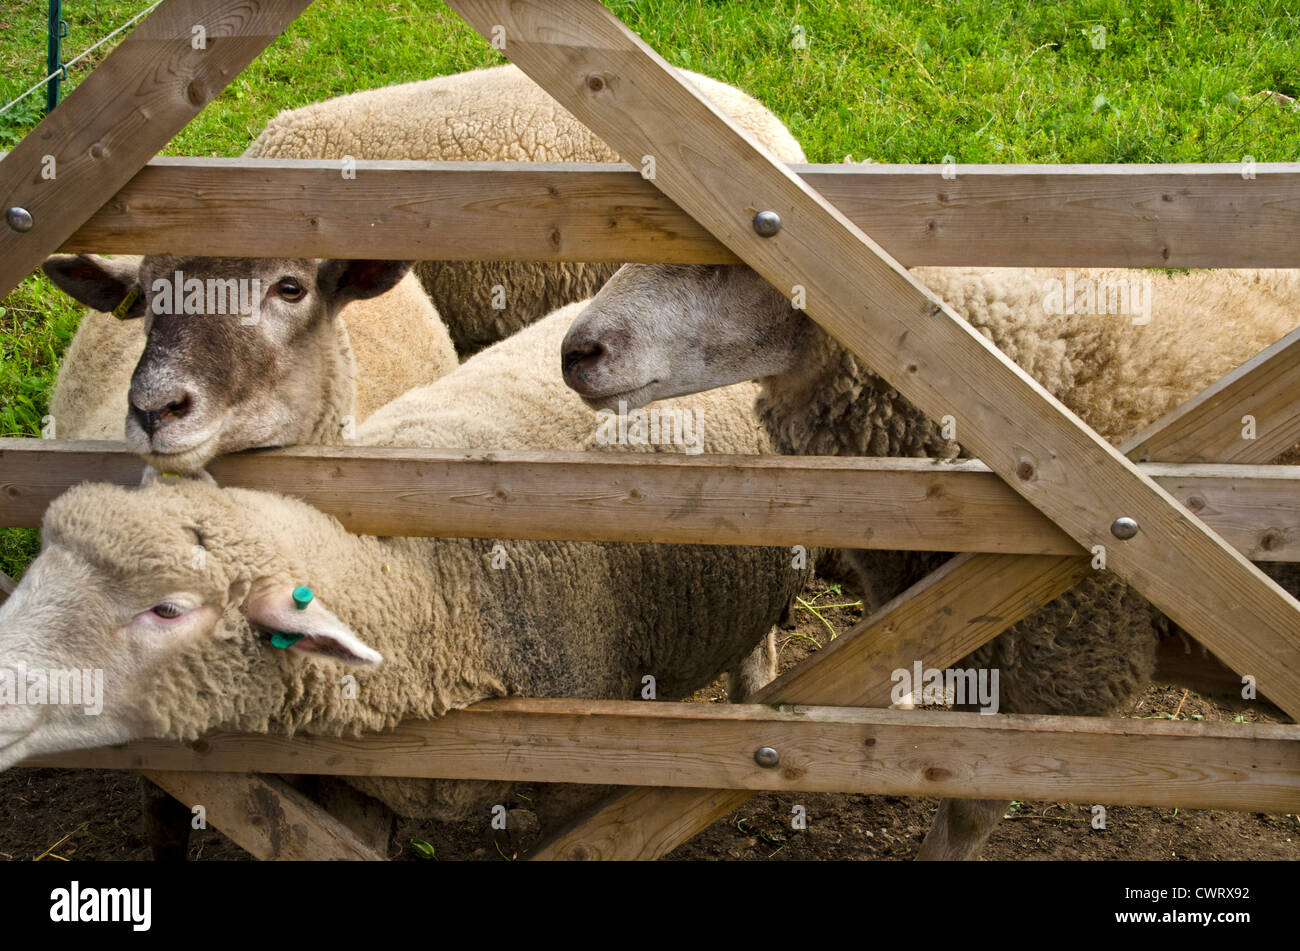 SHEEP ARE LOOKING BEHIND THE FENCE FOR BEING FED IN THE FARM - Stock Image